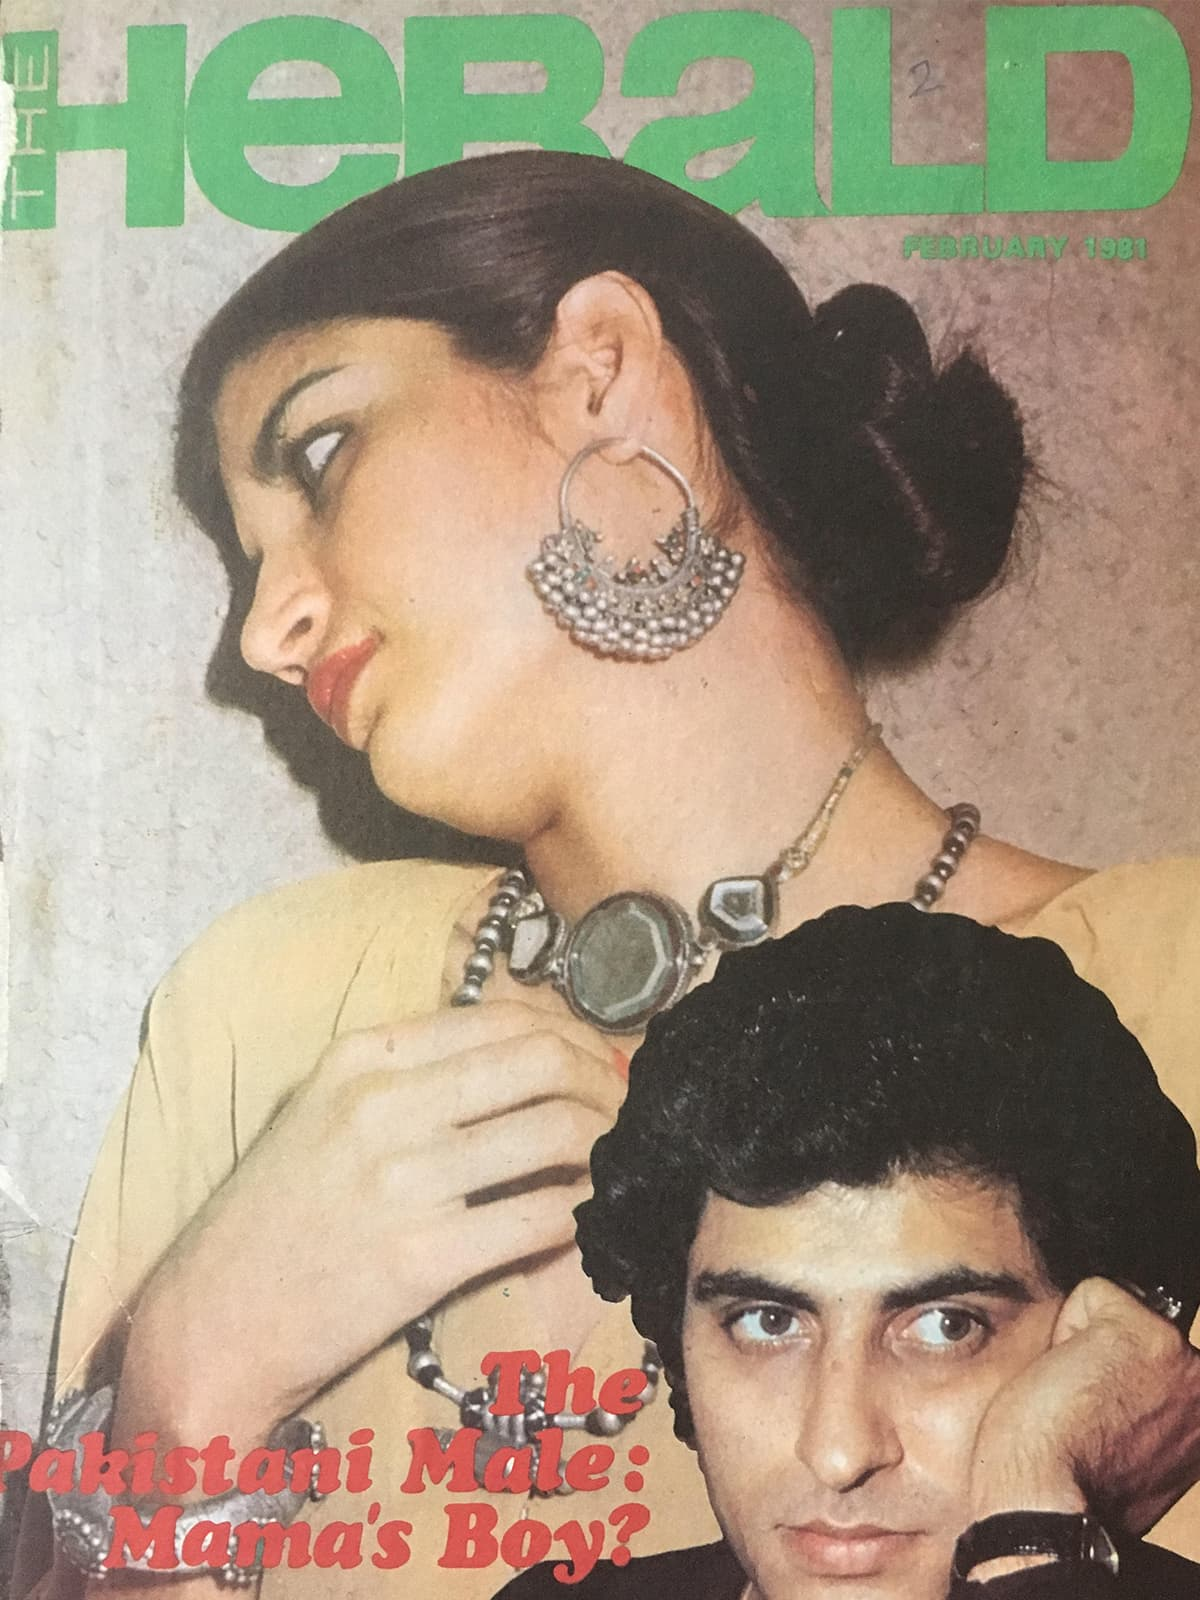 The cover from the February 1981 issue of the Herald